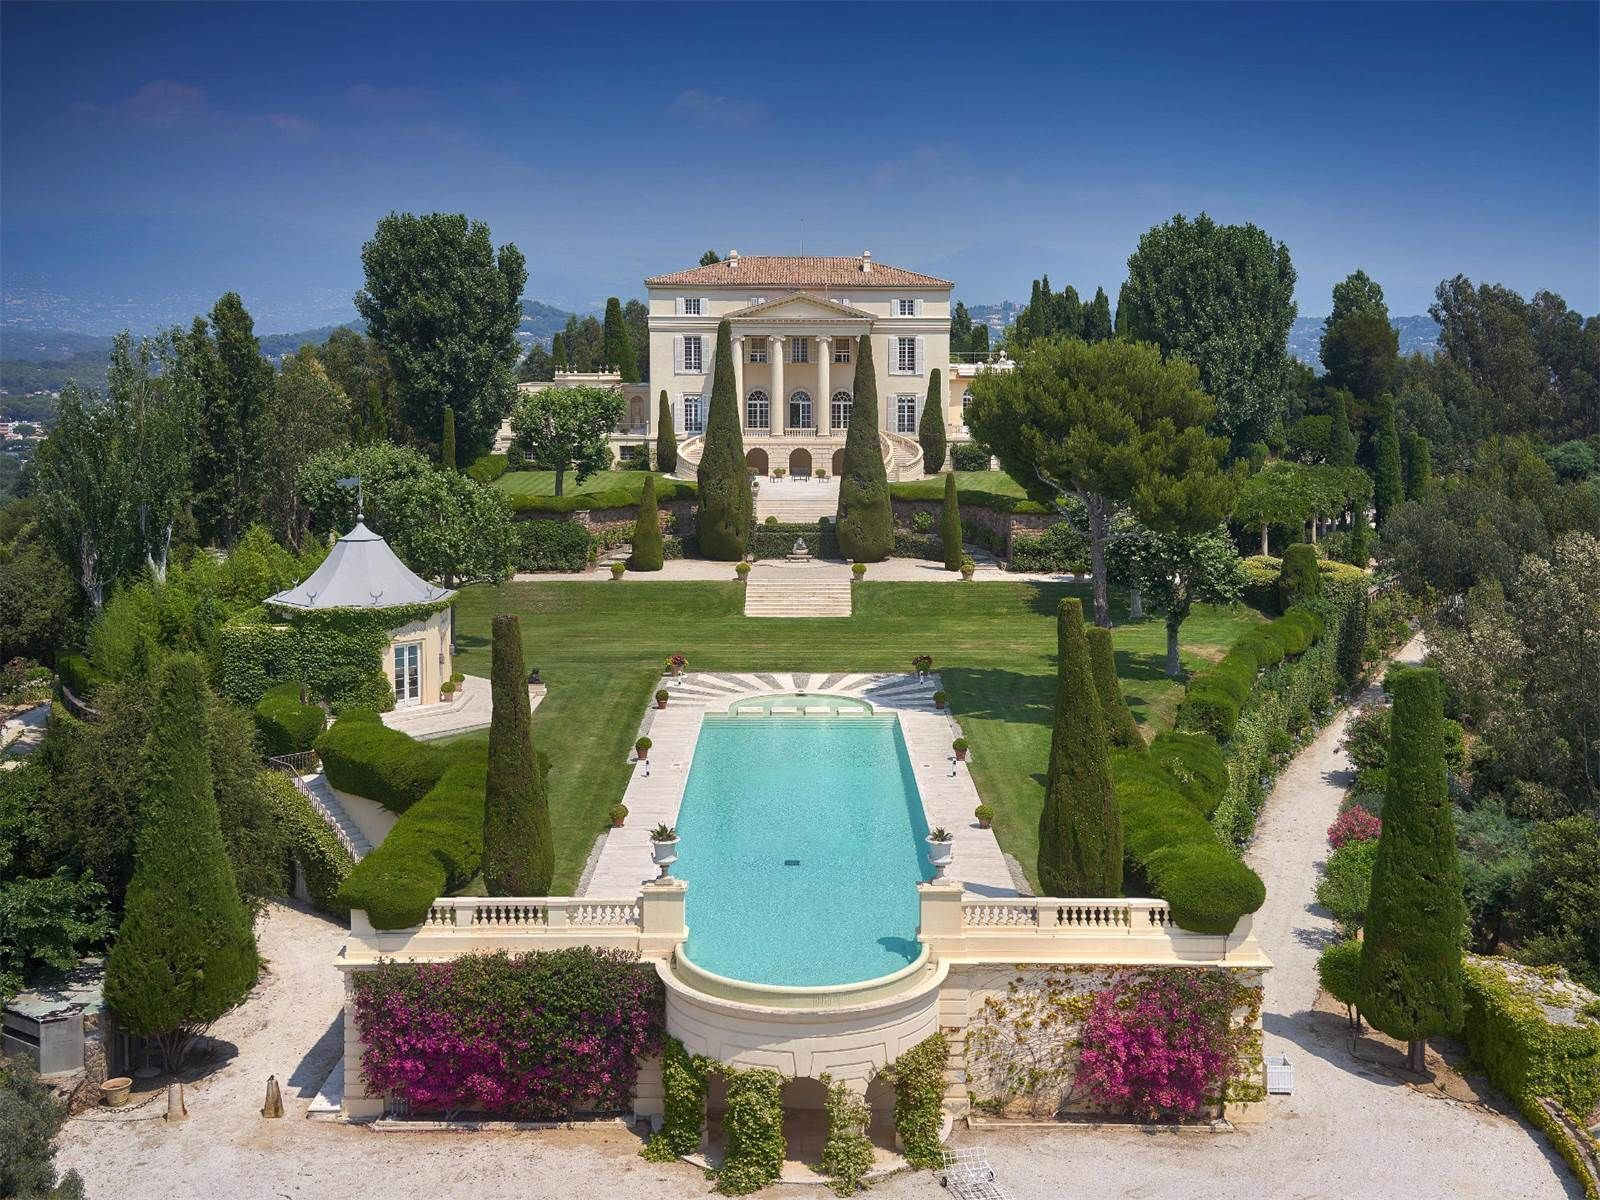 Take A Look At The 14 Most Expensive Homes In The World Most Expensive Homes In The World